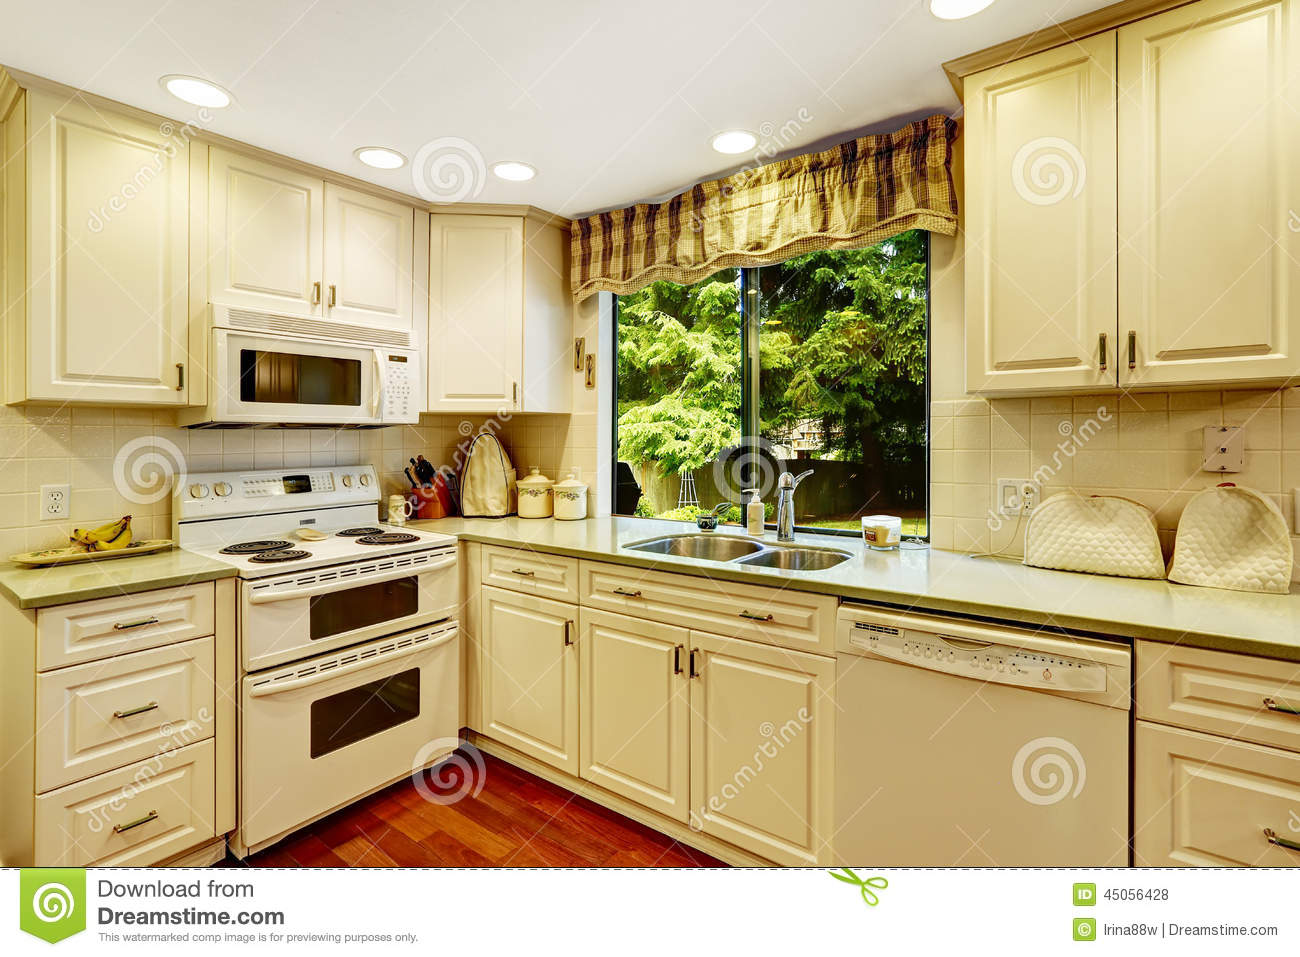 Simple kitchen interior in old house stock photo image for Simple home interior design kitchen